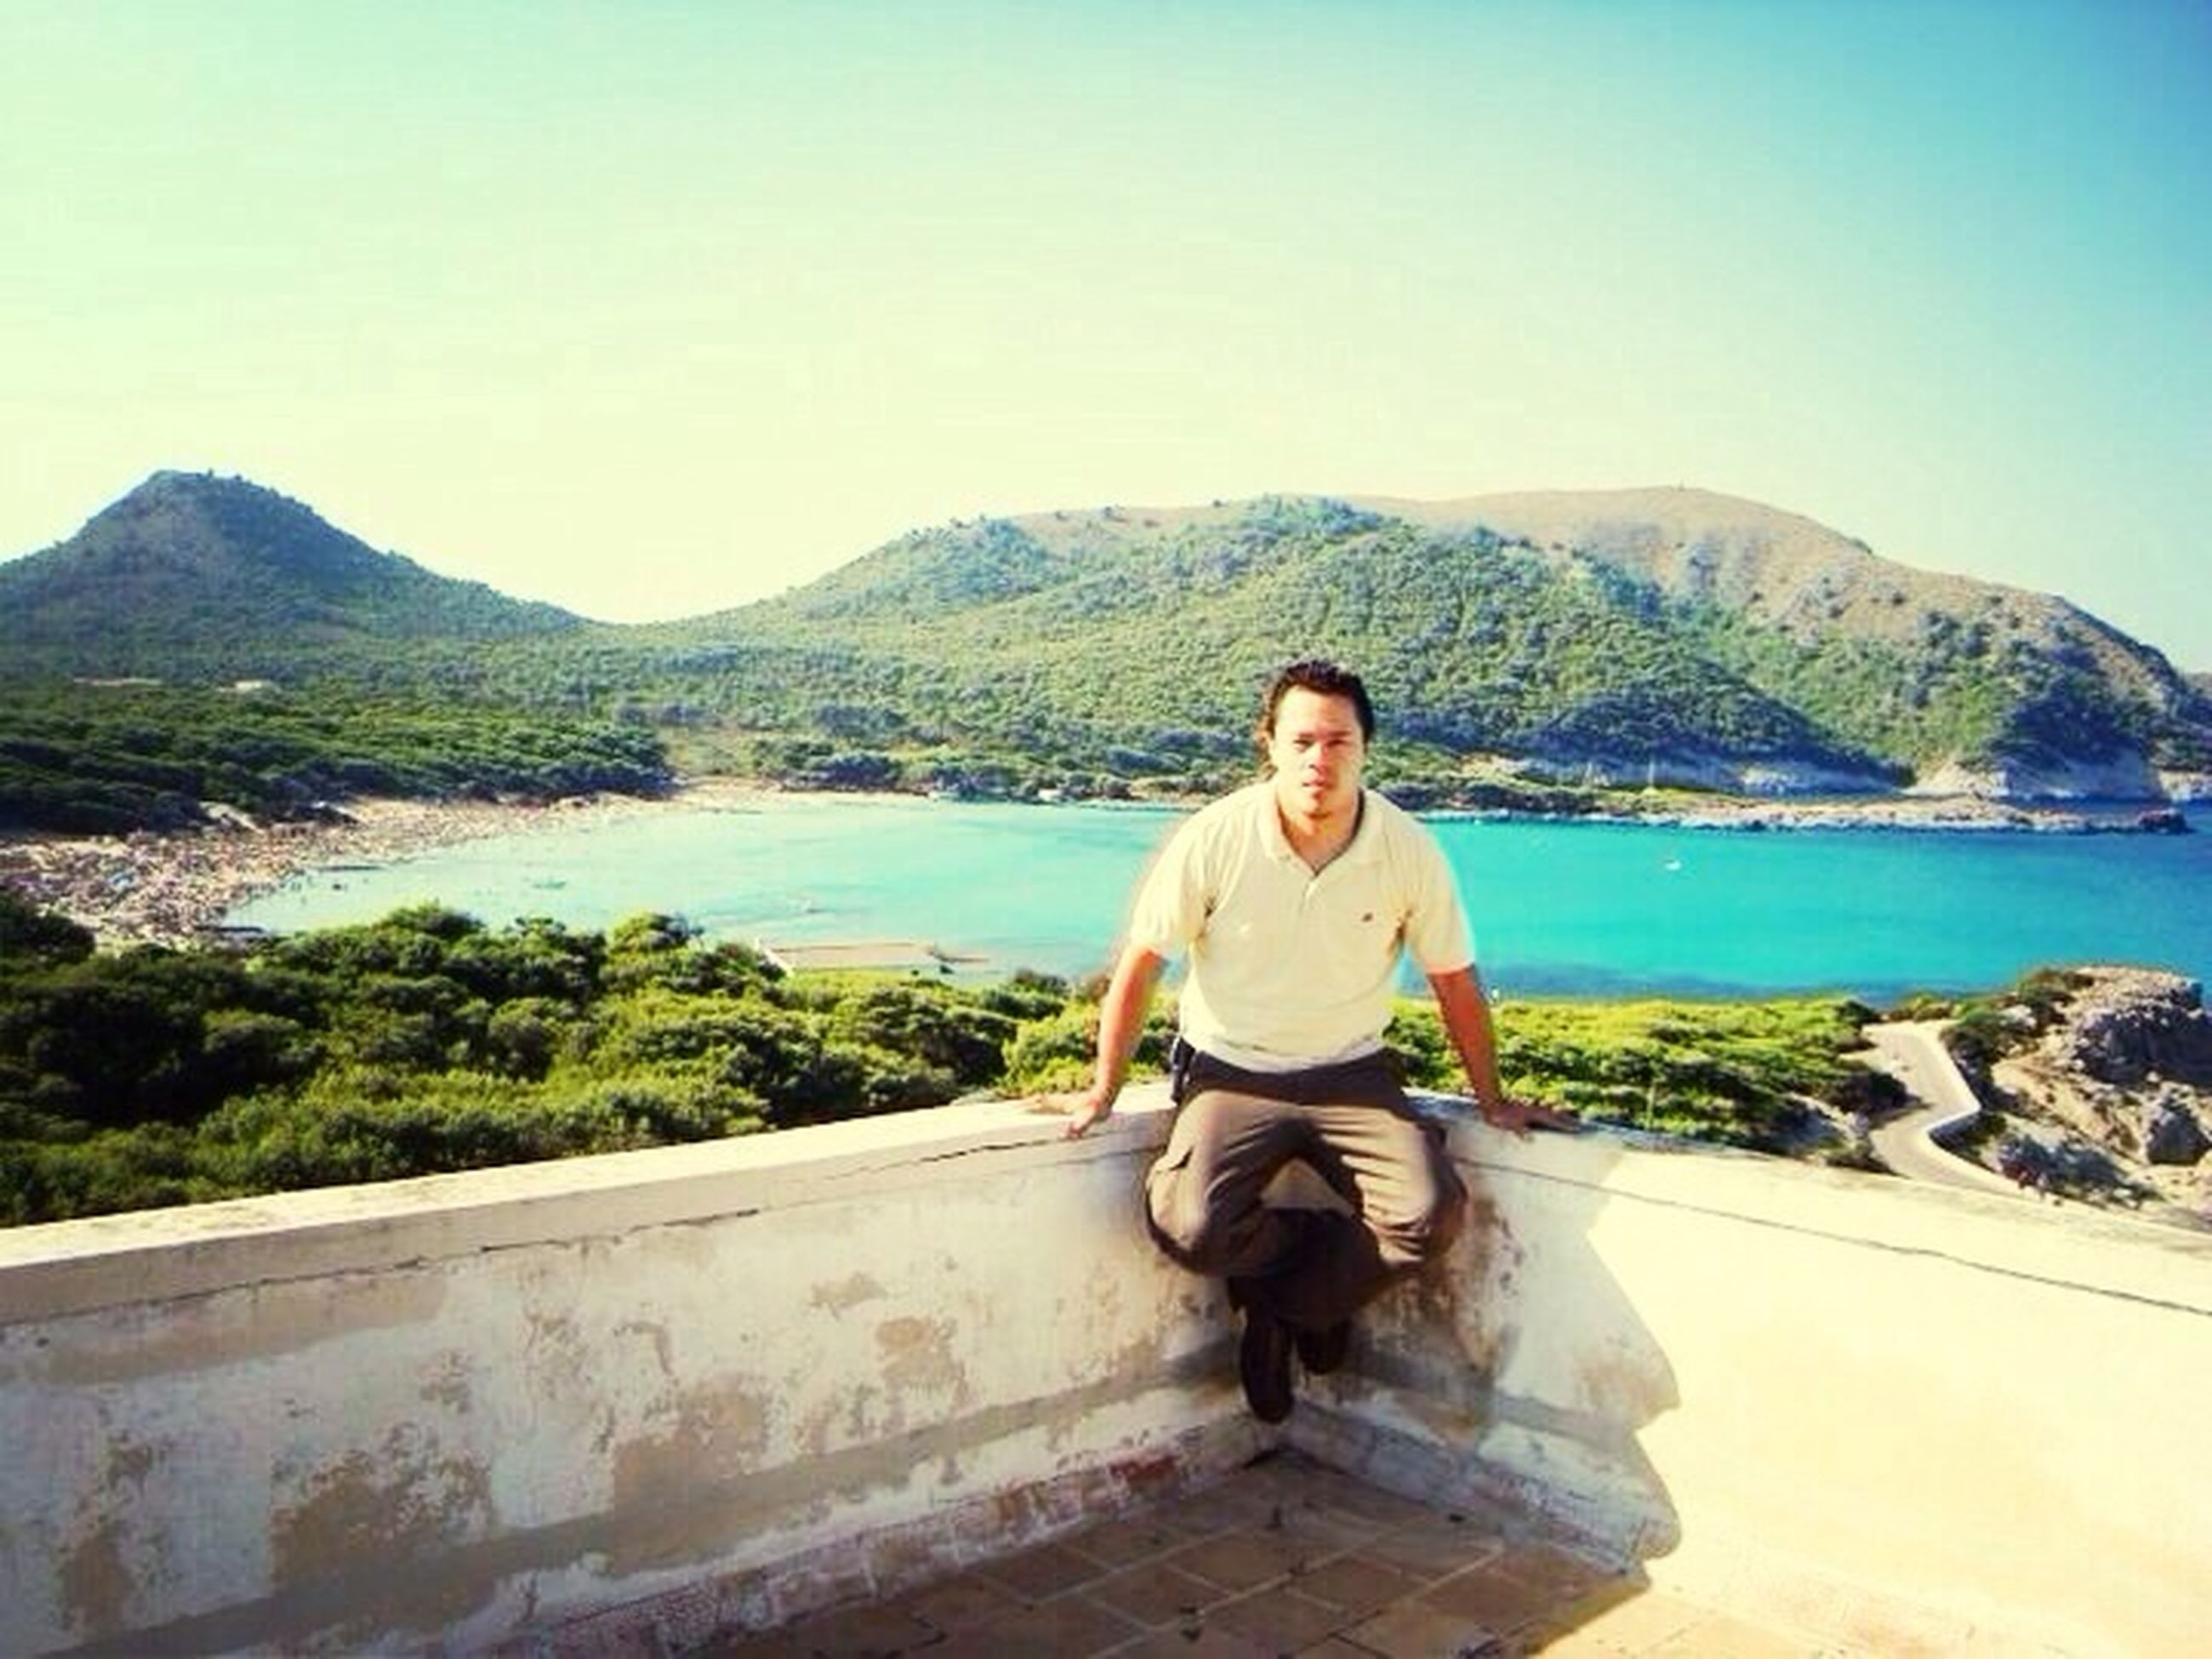 clear sky, mountain, water, copy space, young adult, lifestyles, casual clothing, leisure activity, person, mountain range, portrait, sea, young men, full length, looking at camera, sitting, beauty in nature, scenics